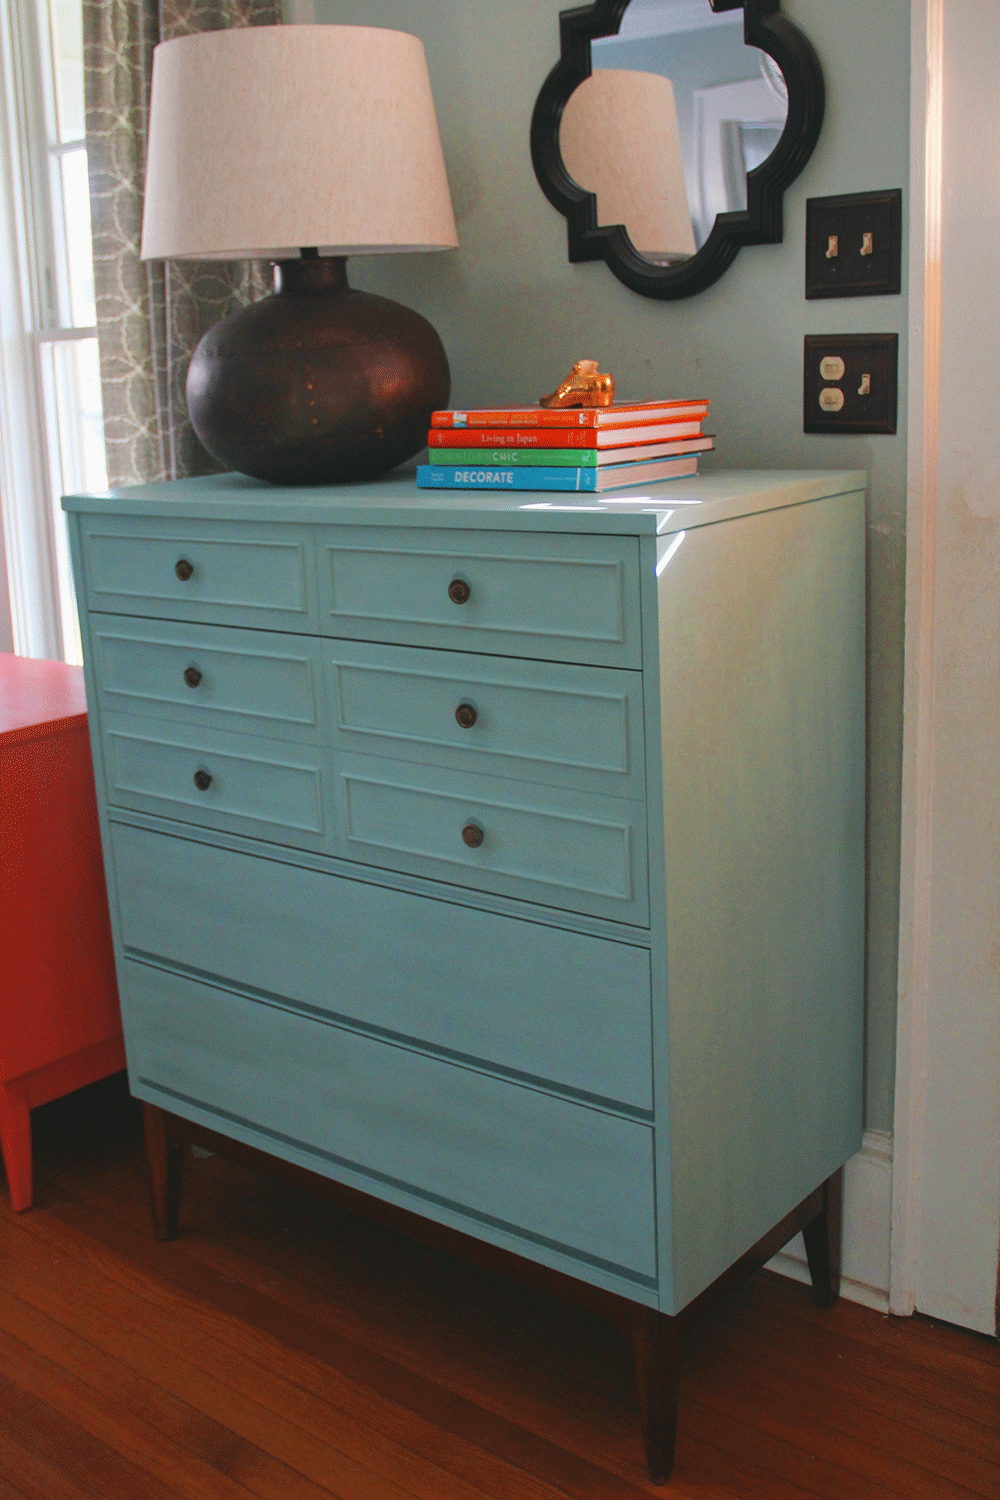 a-simpler-design-jo-torrijos-annie-sloan-turquoise-mid-century-dresser-1.png